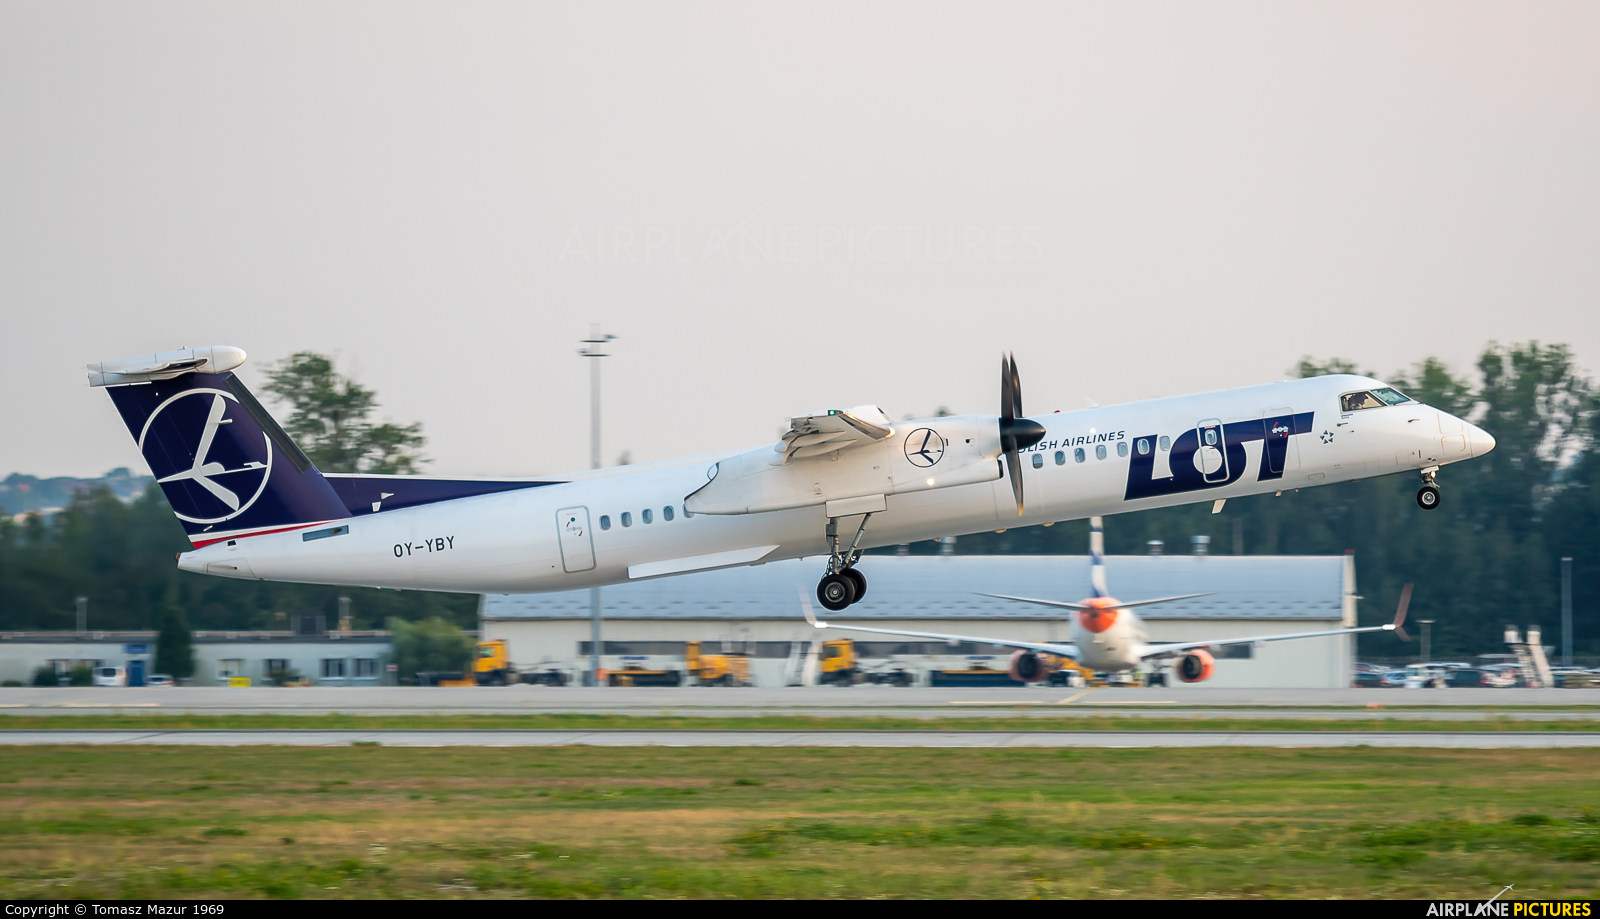 LOT - Polish Airlines OY-YBY aircraft at Katowice - Pyrzowice